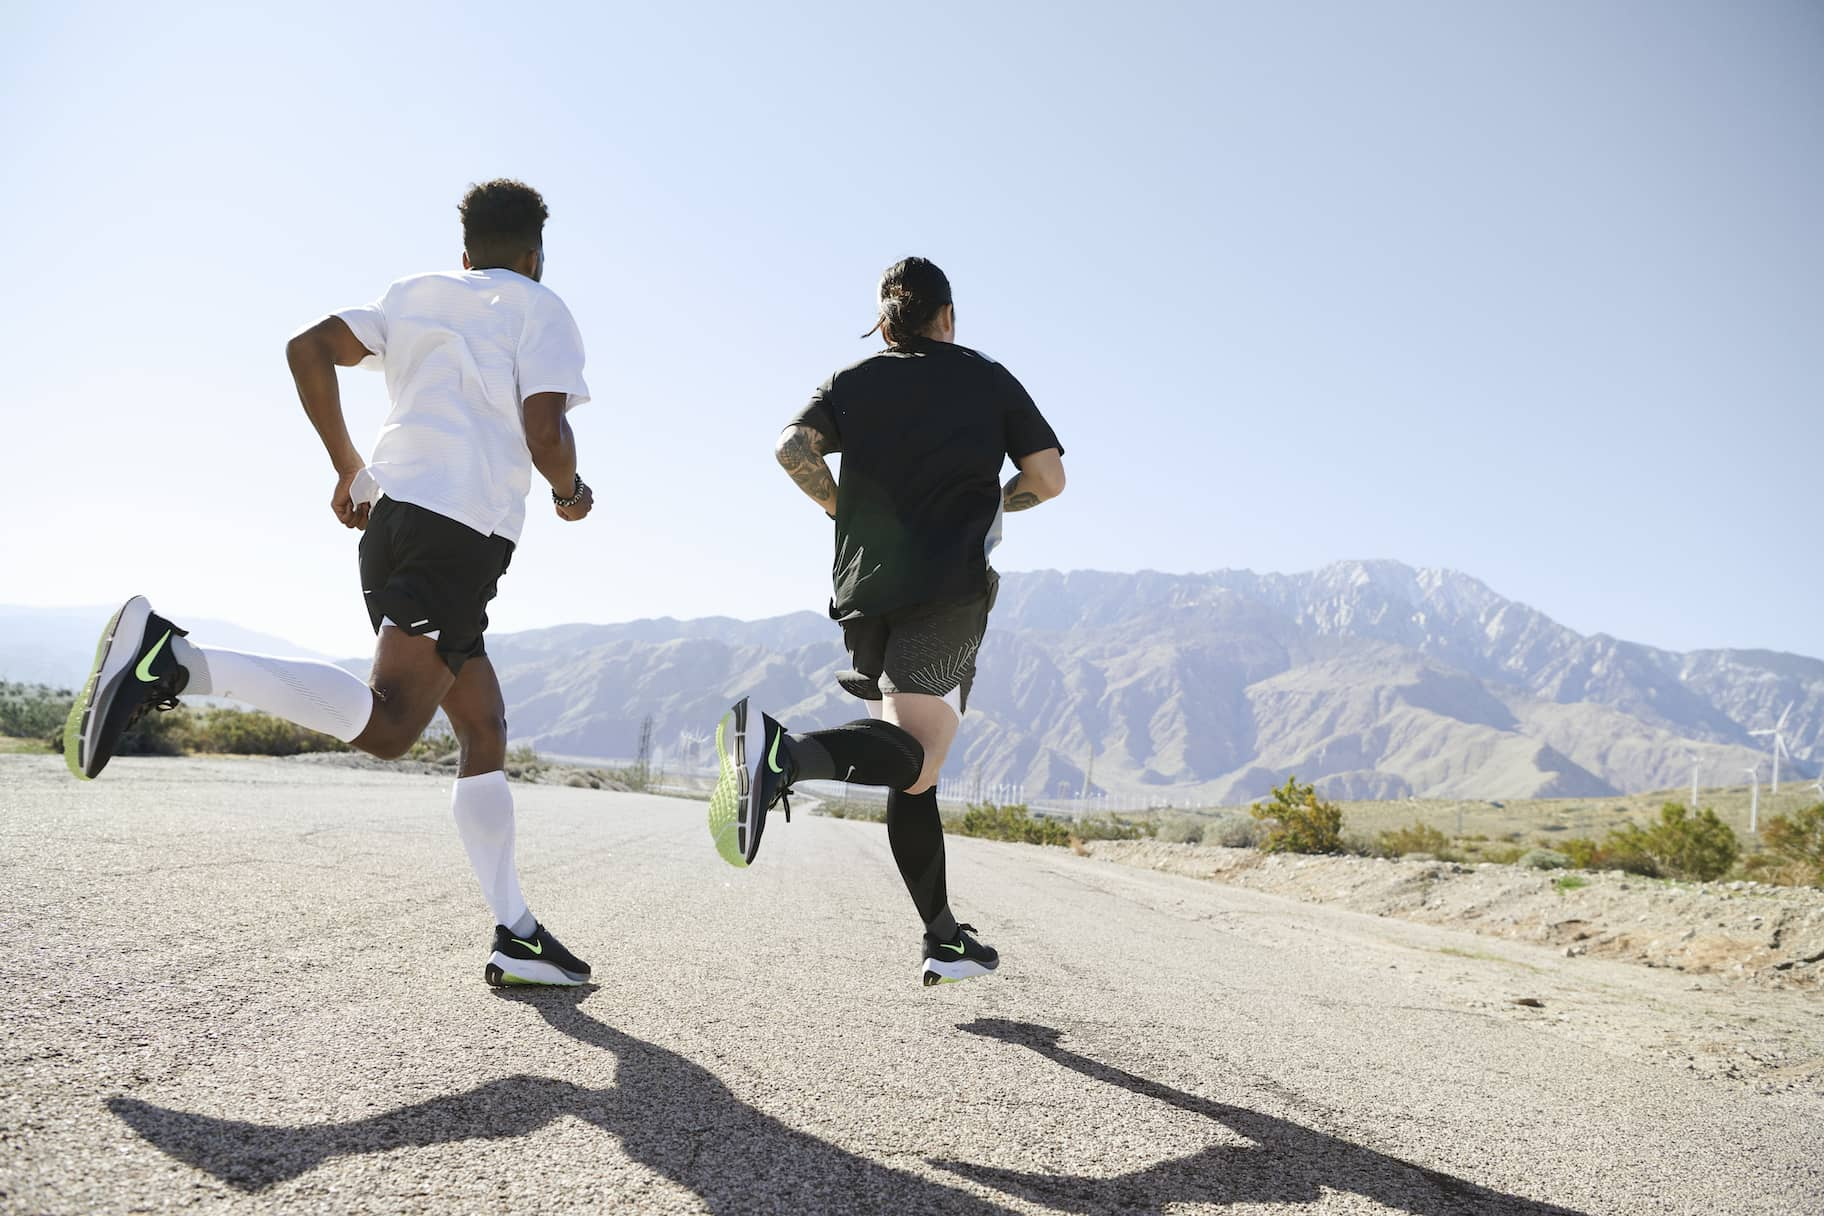 Tips for Buying the Right Shoe for Your Next Run